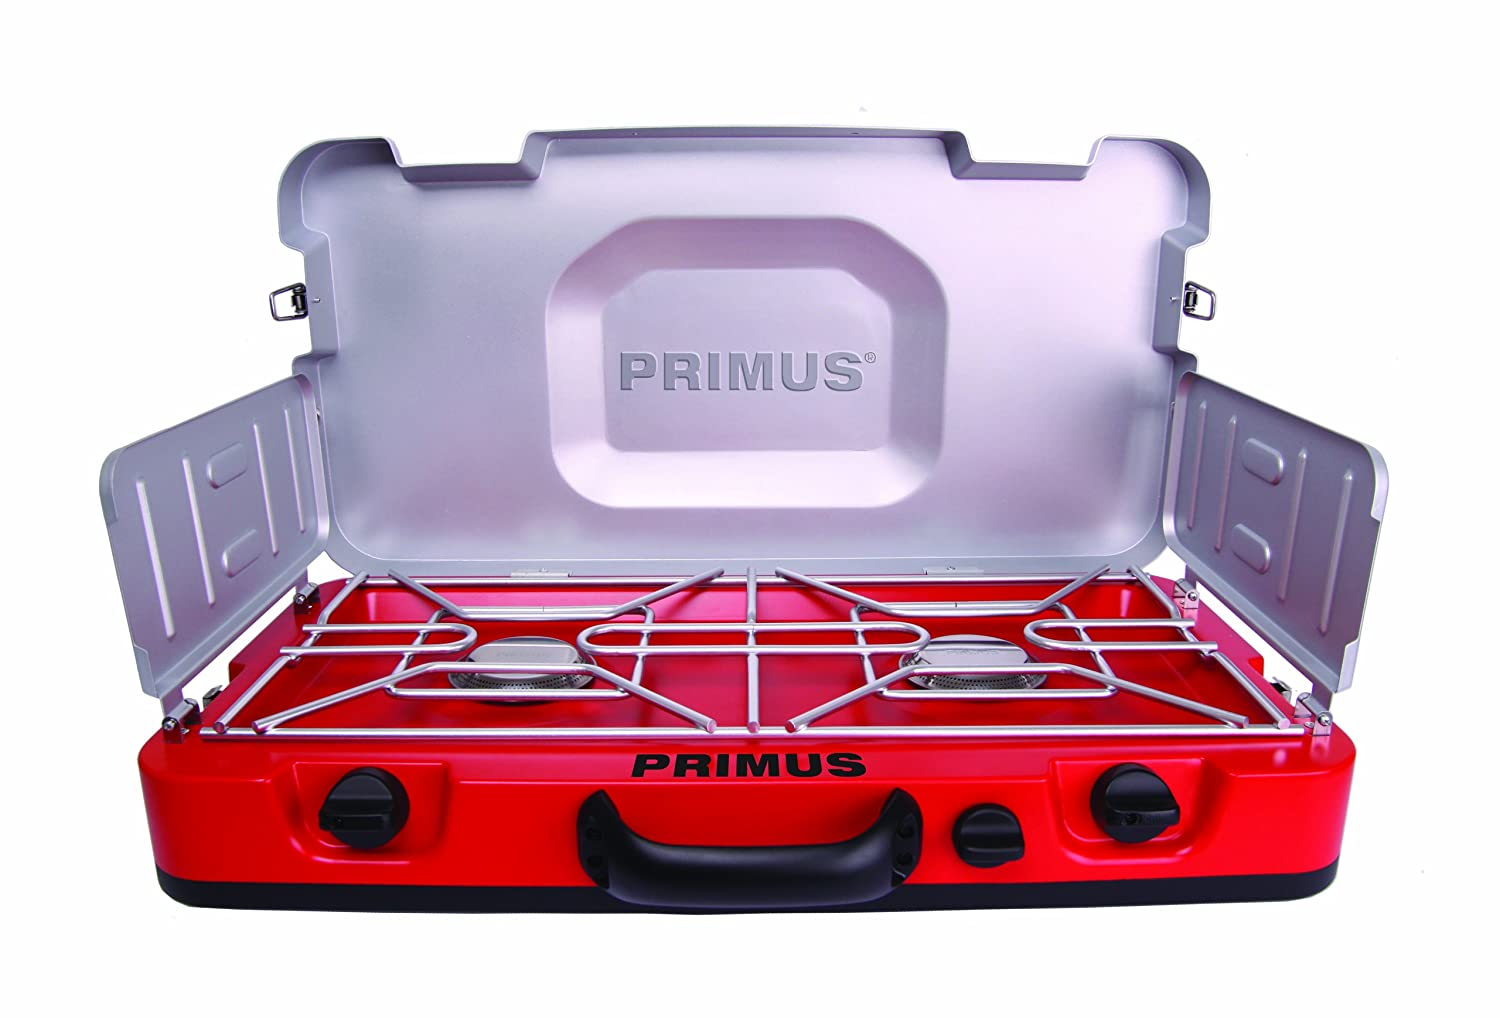 Amazon.com : Primus FireHole 100 Stove : Camping Stoves : Sports ...